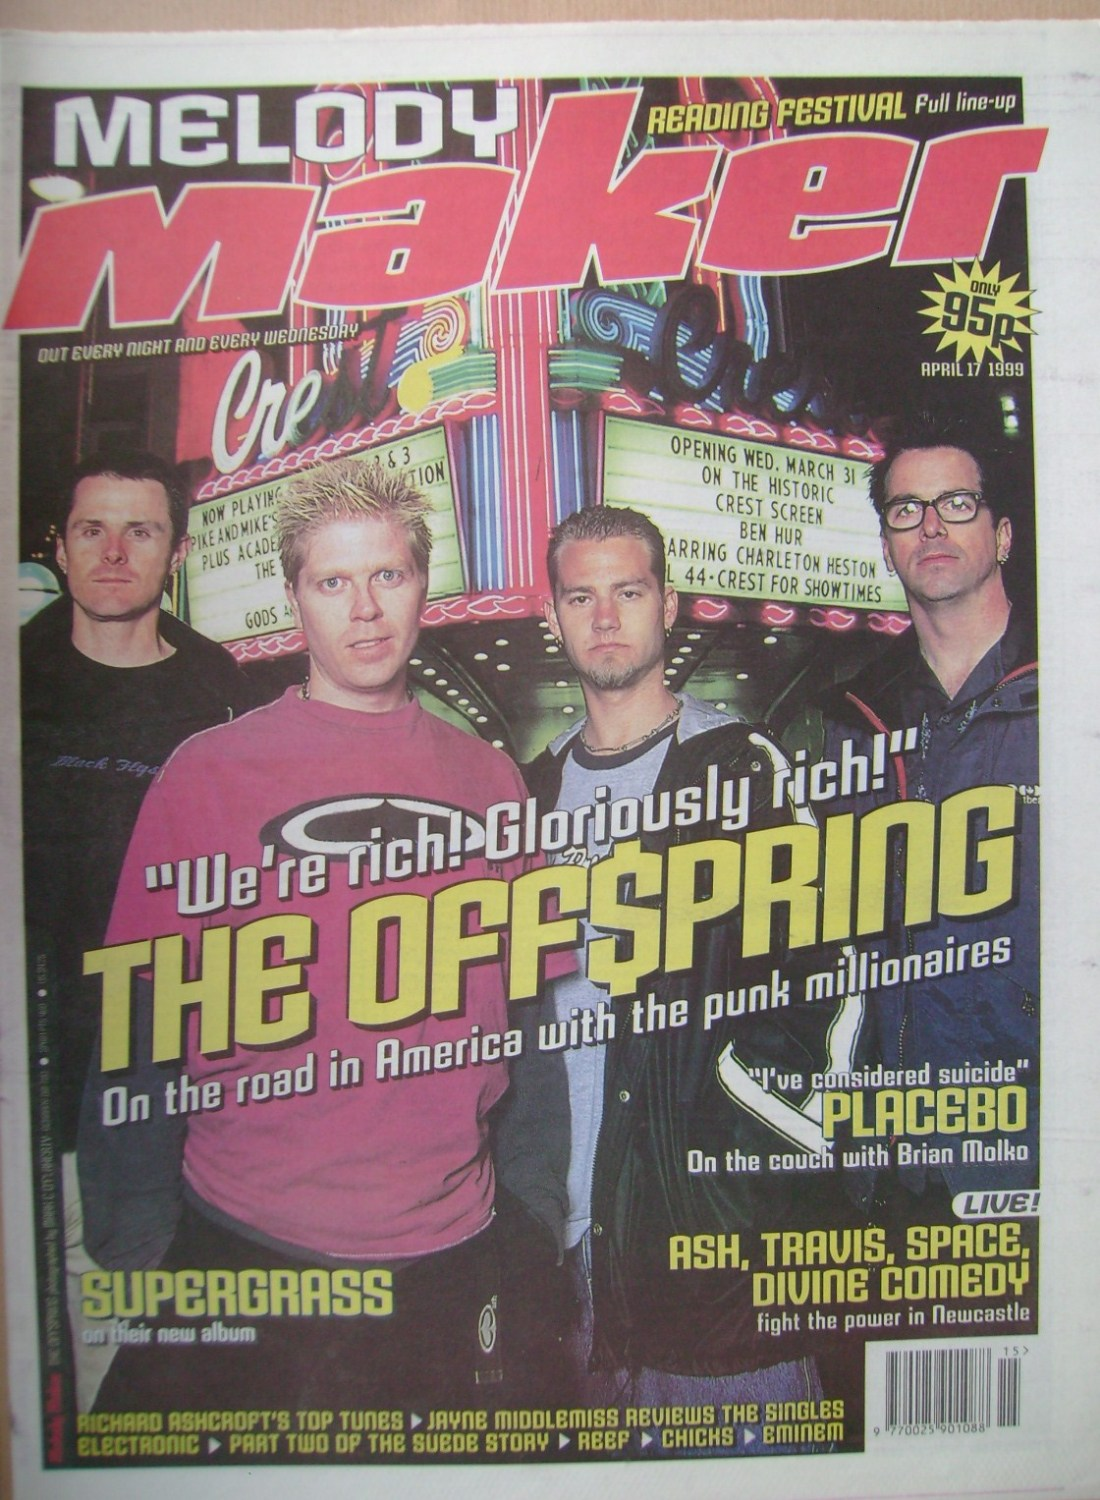 <!--1999-04-17-->Melody Maker magazine - The Offspring cover (17 April 1999